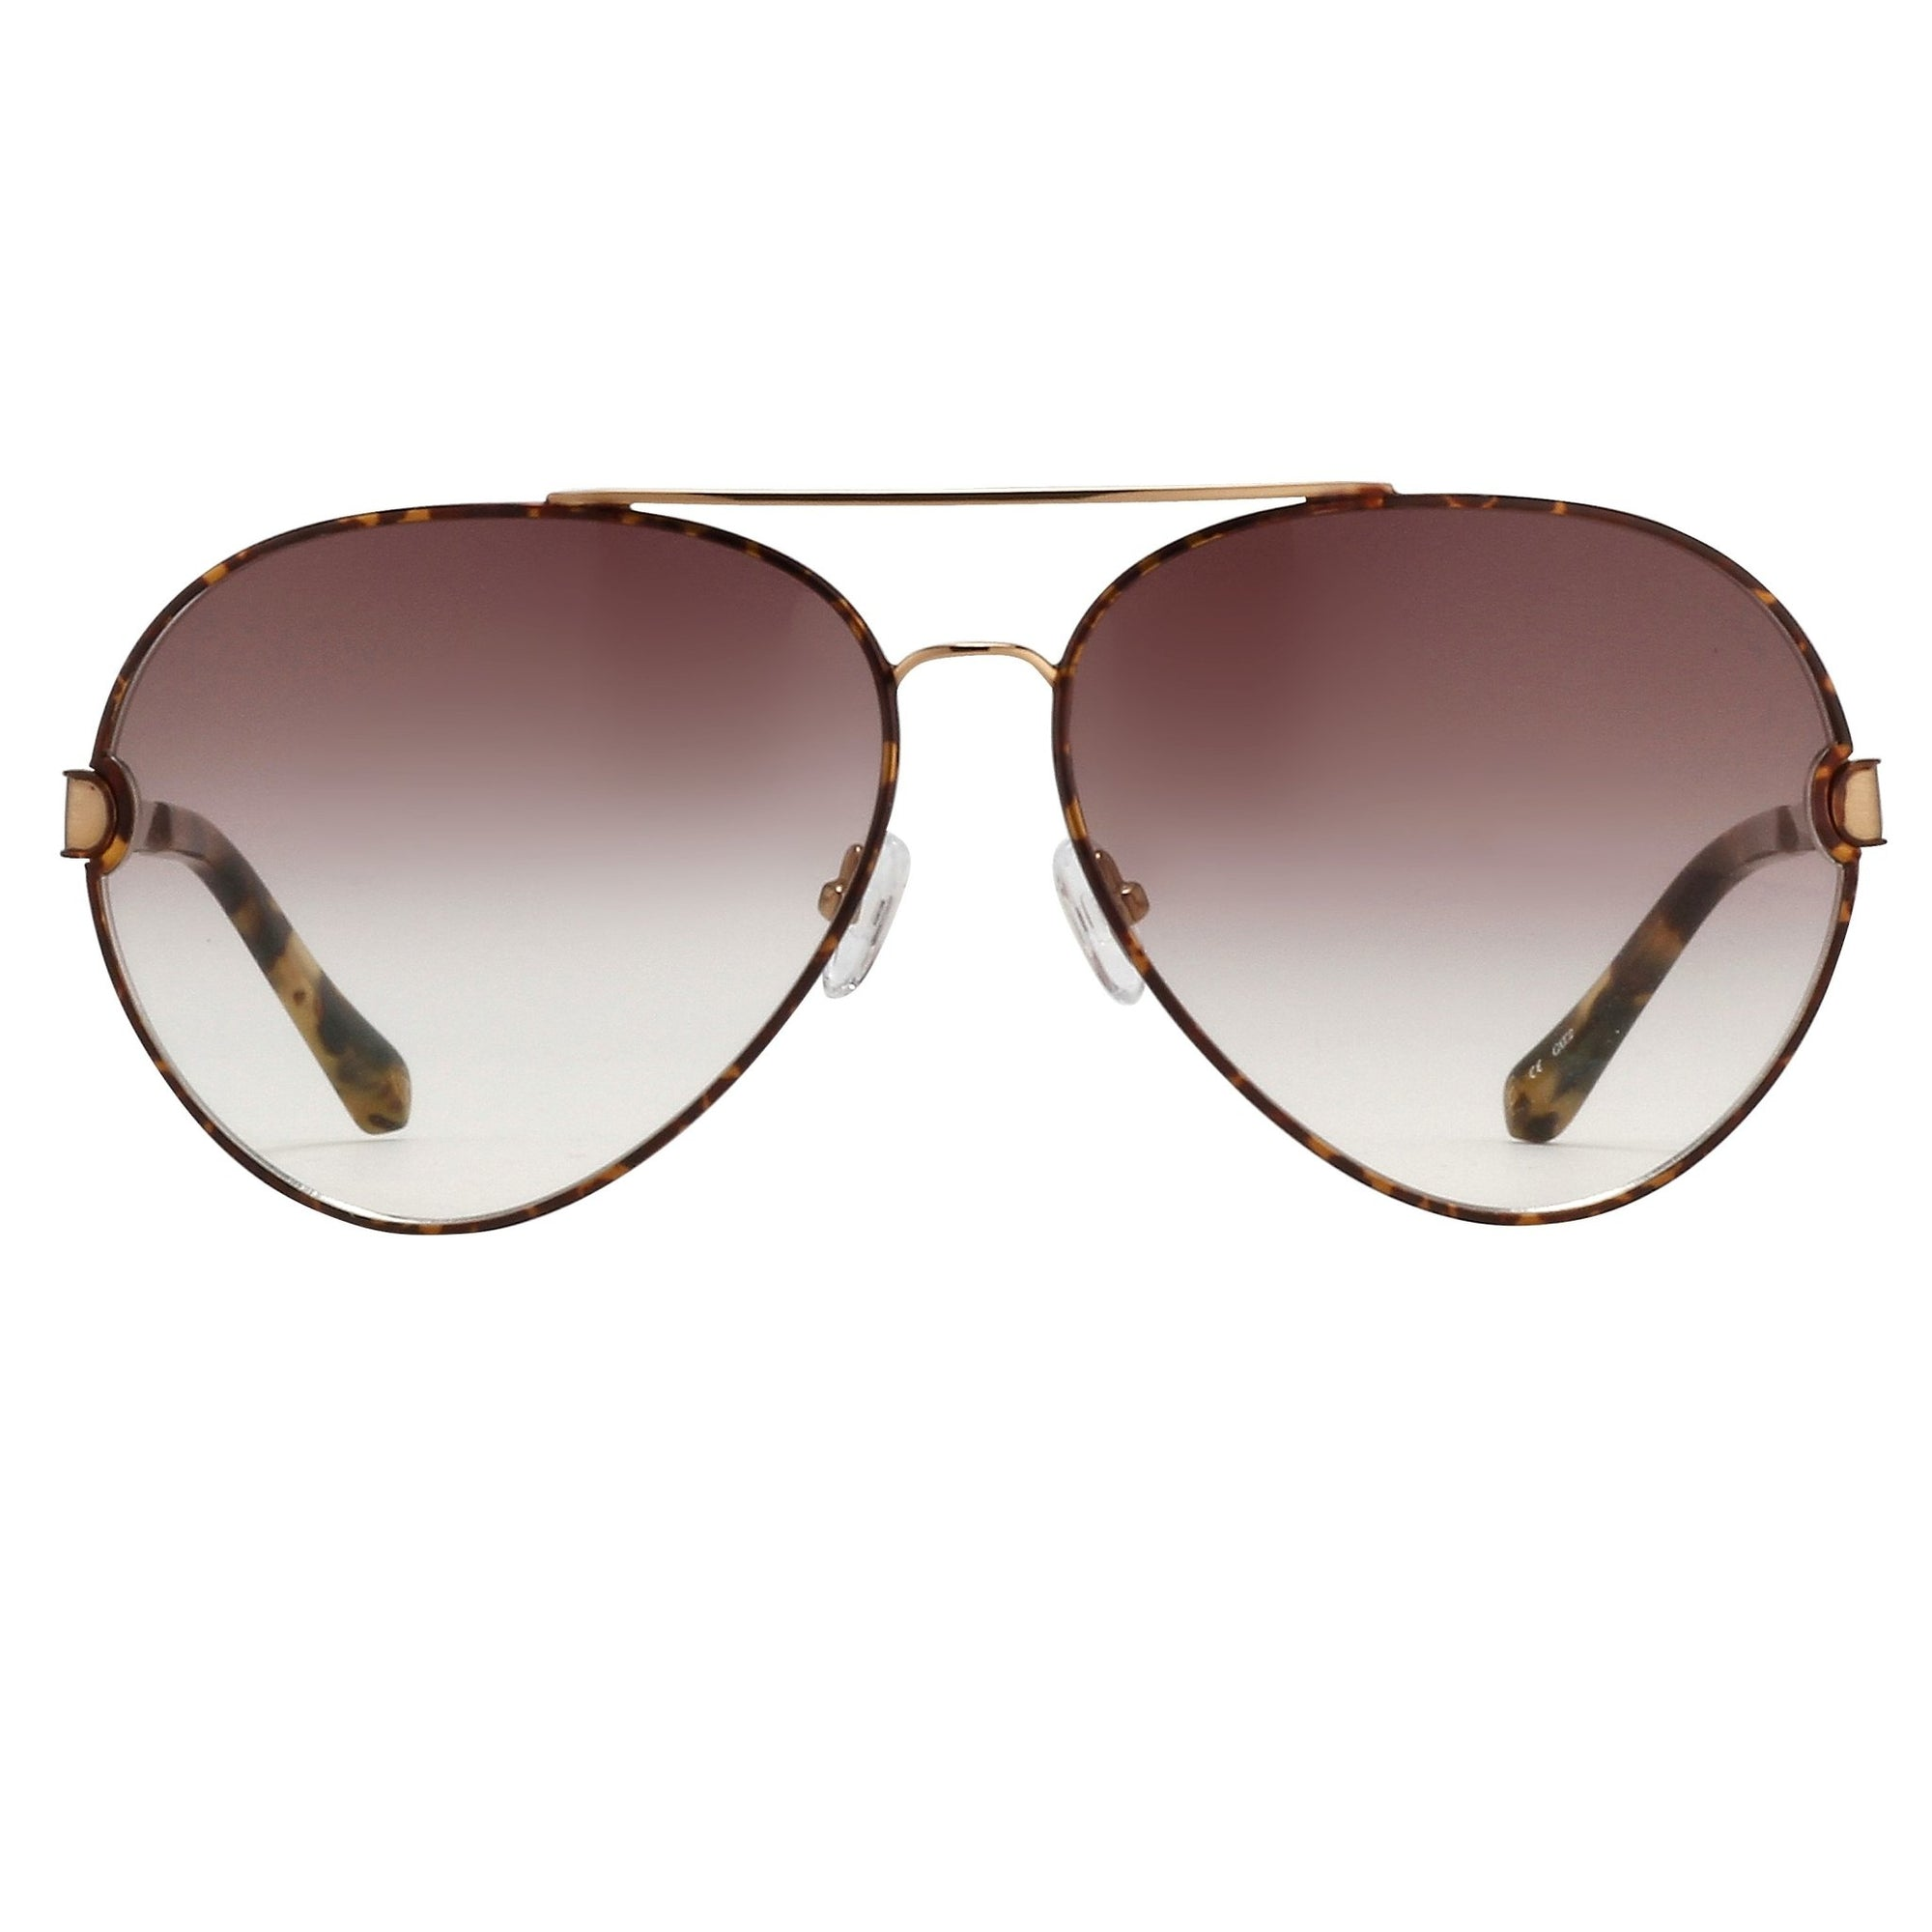 Oscar De La Renta Unisex Sunglasses Tortoise and Brown Gradient Lenses - ODLR59C2SUN - Watches & Crystals